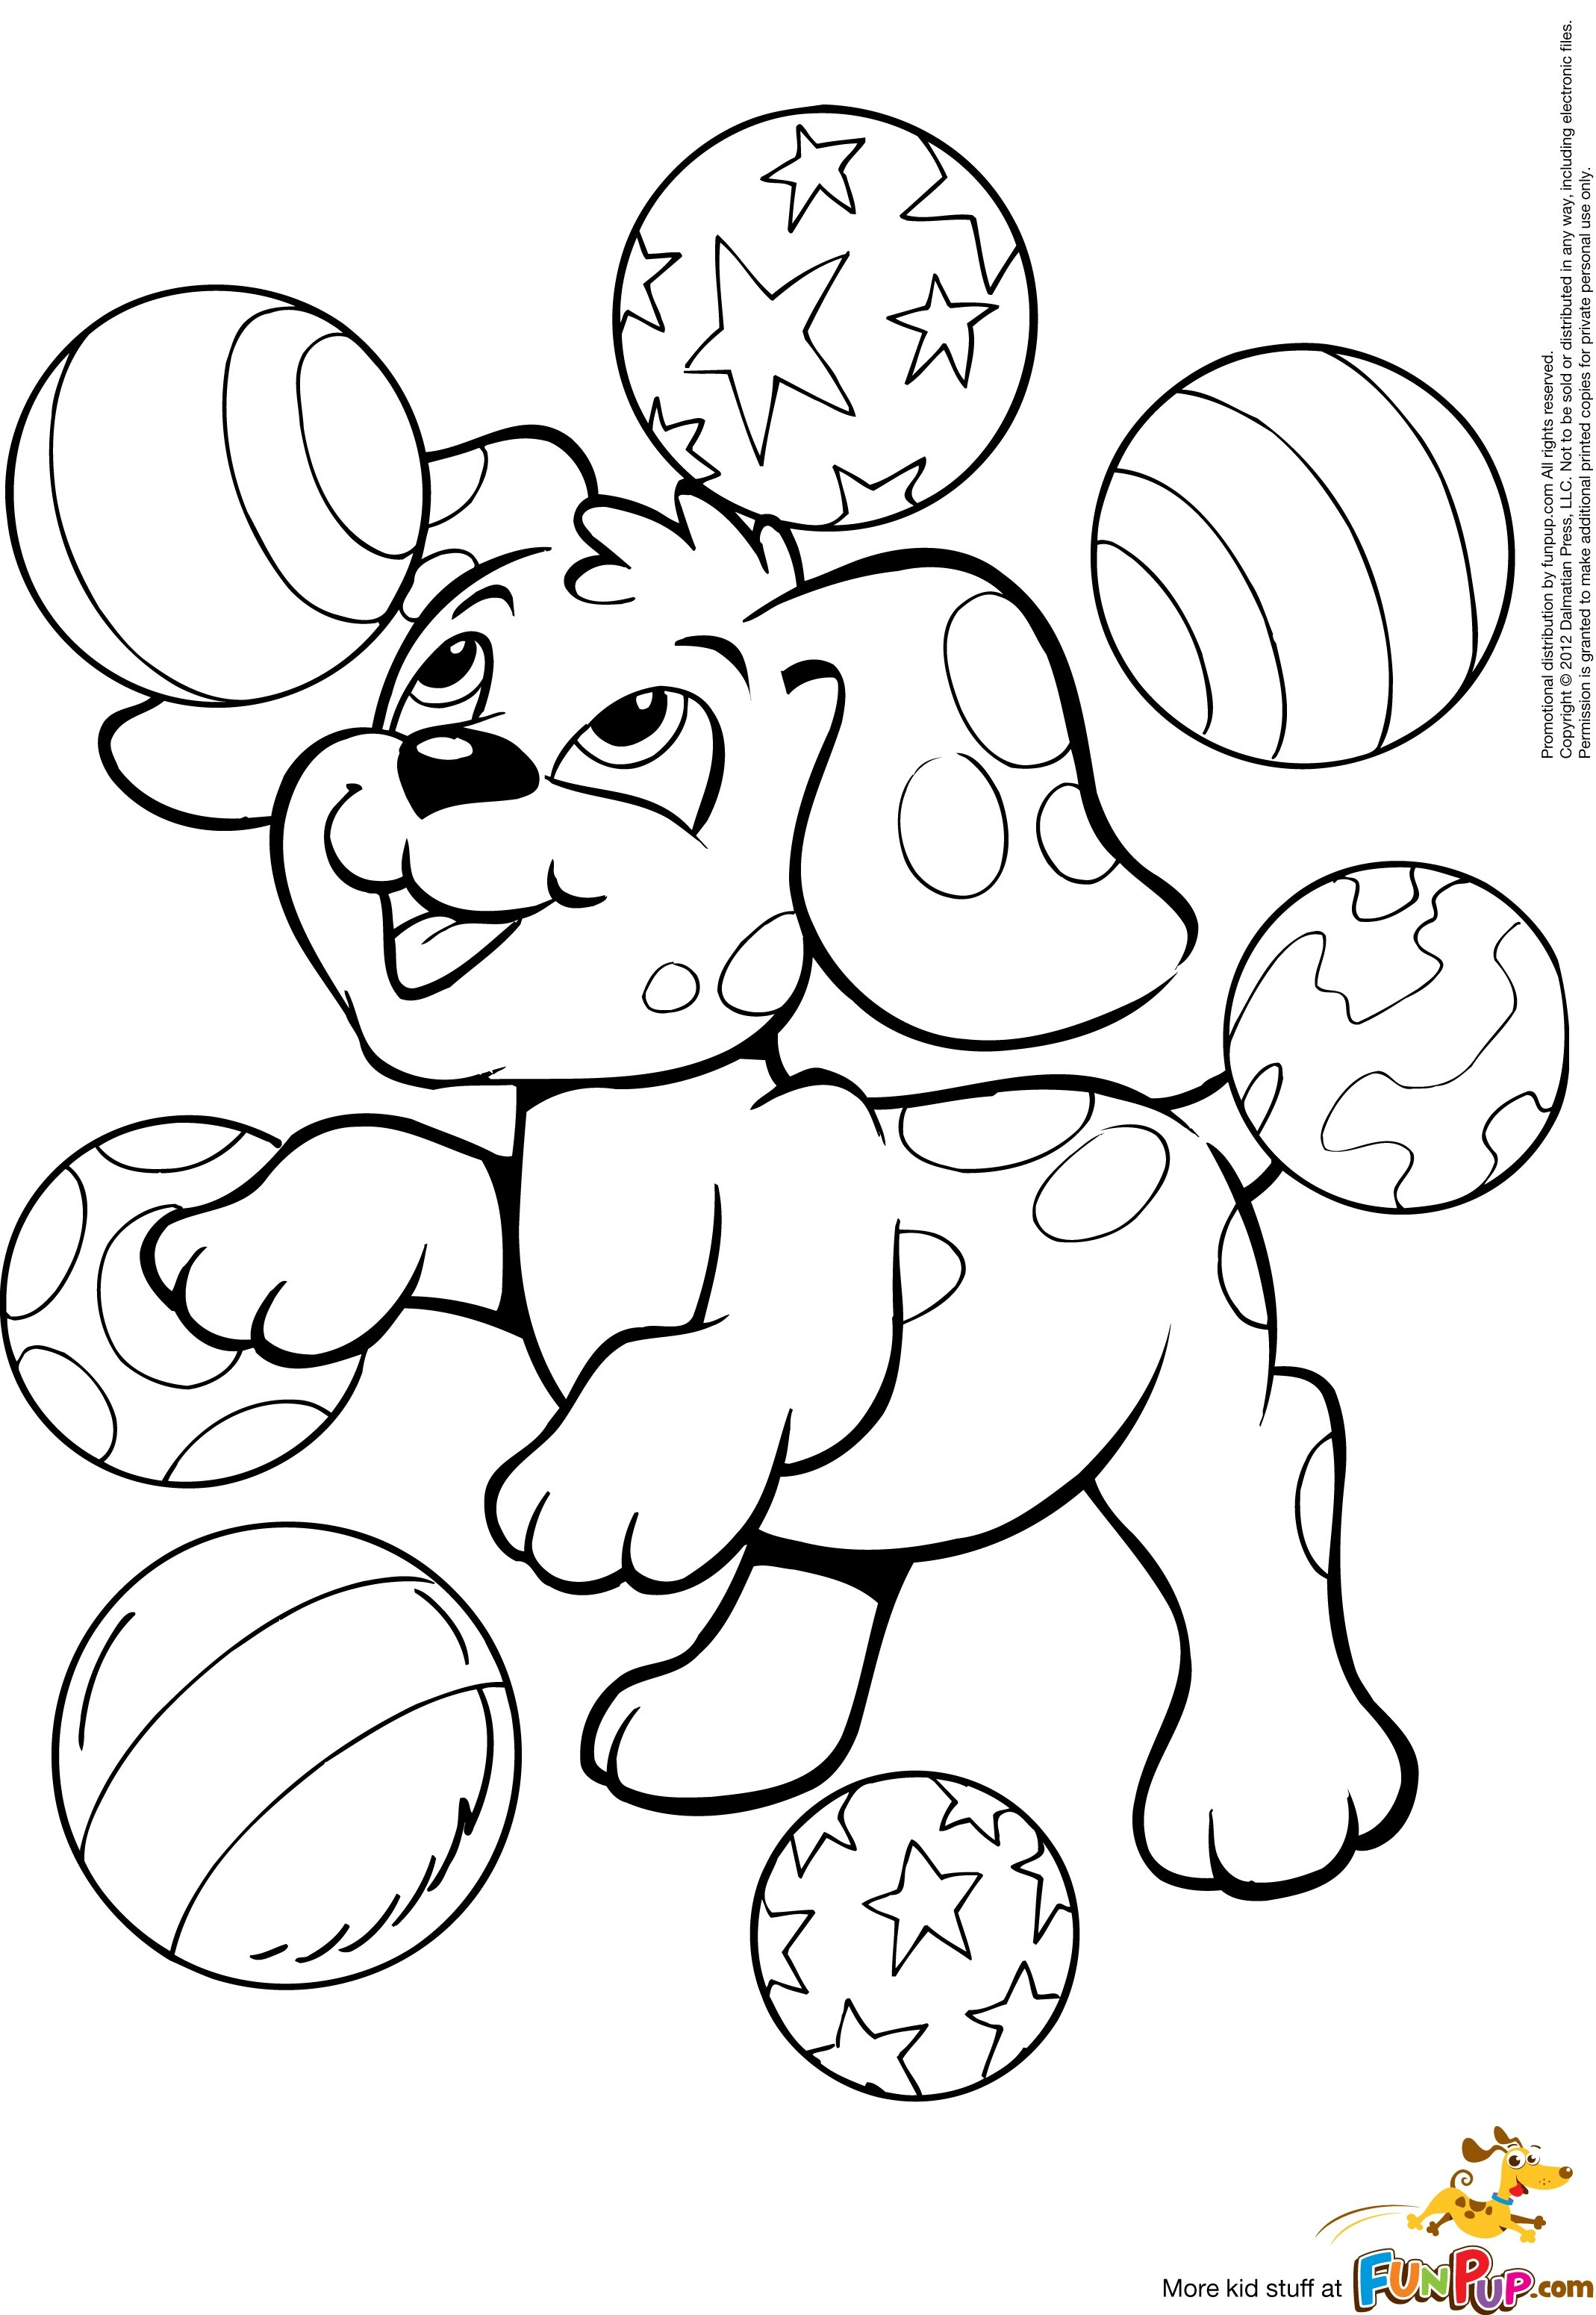 2138x3101 Bold Design Dog Paw Coloring Page Coloring Pages Boy Scouts Kids